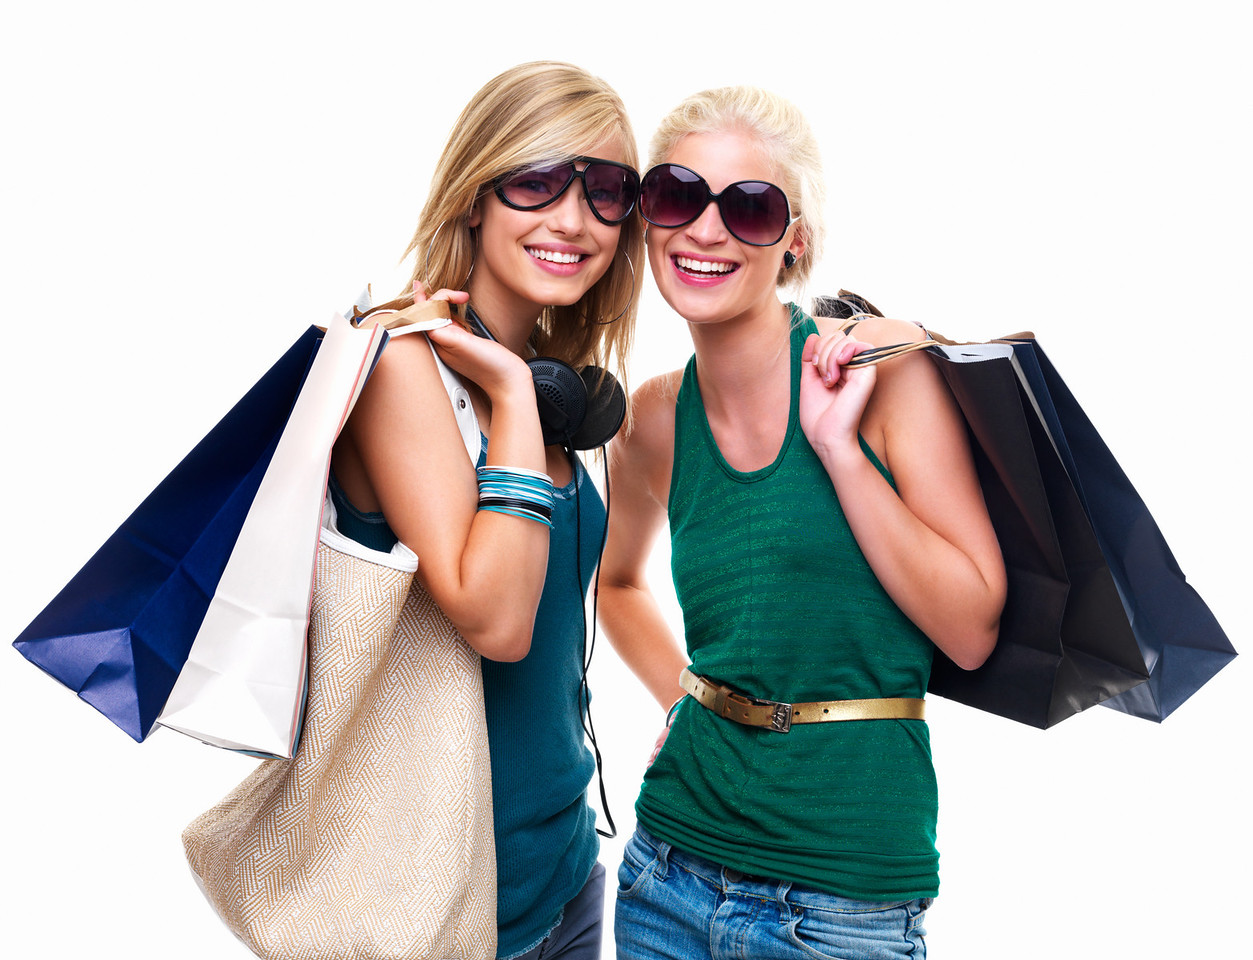 Portrait of happy young girls standing together with shopping bags